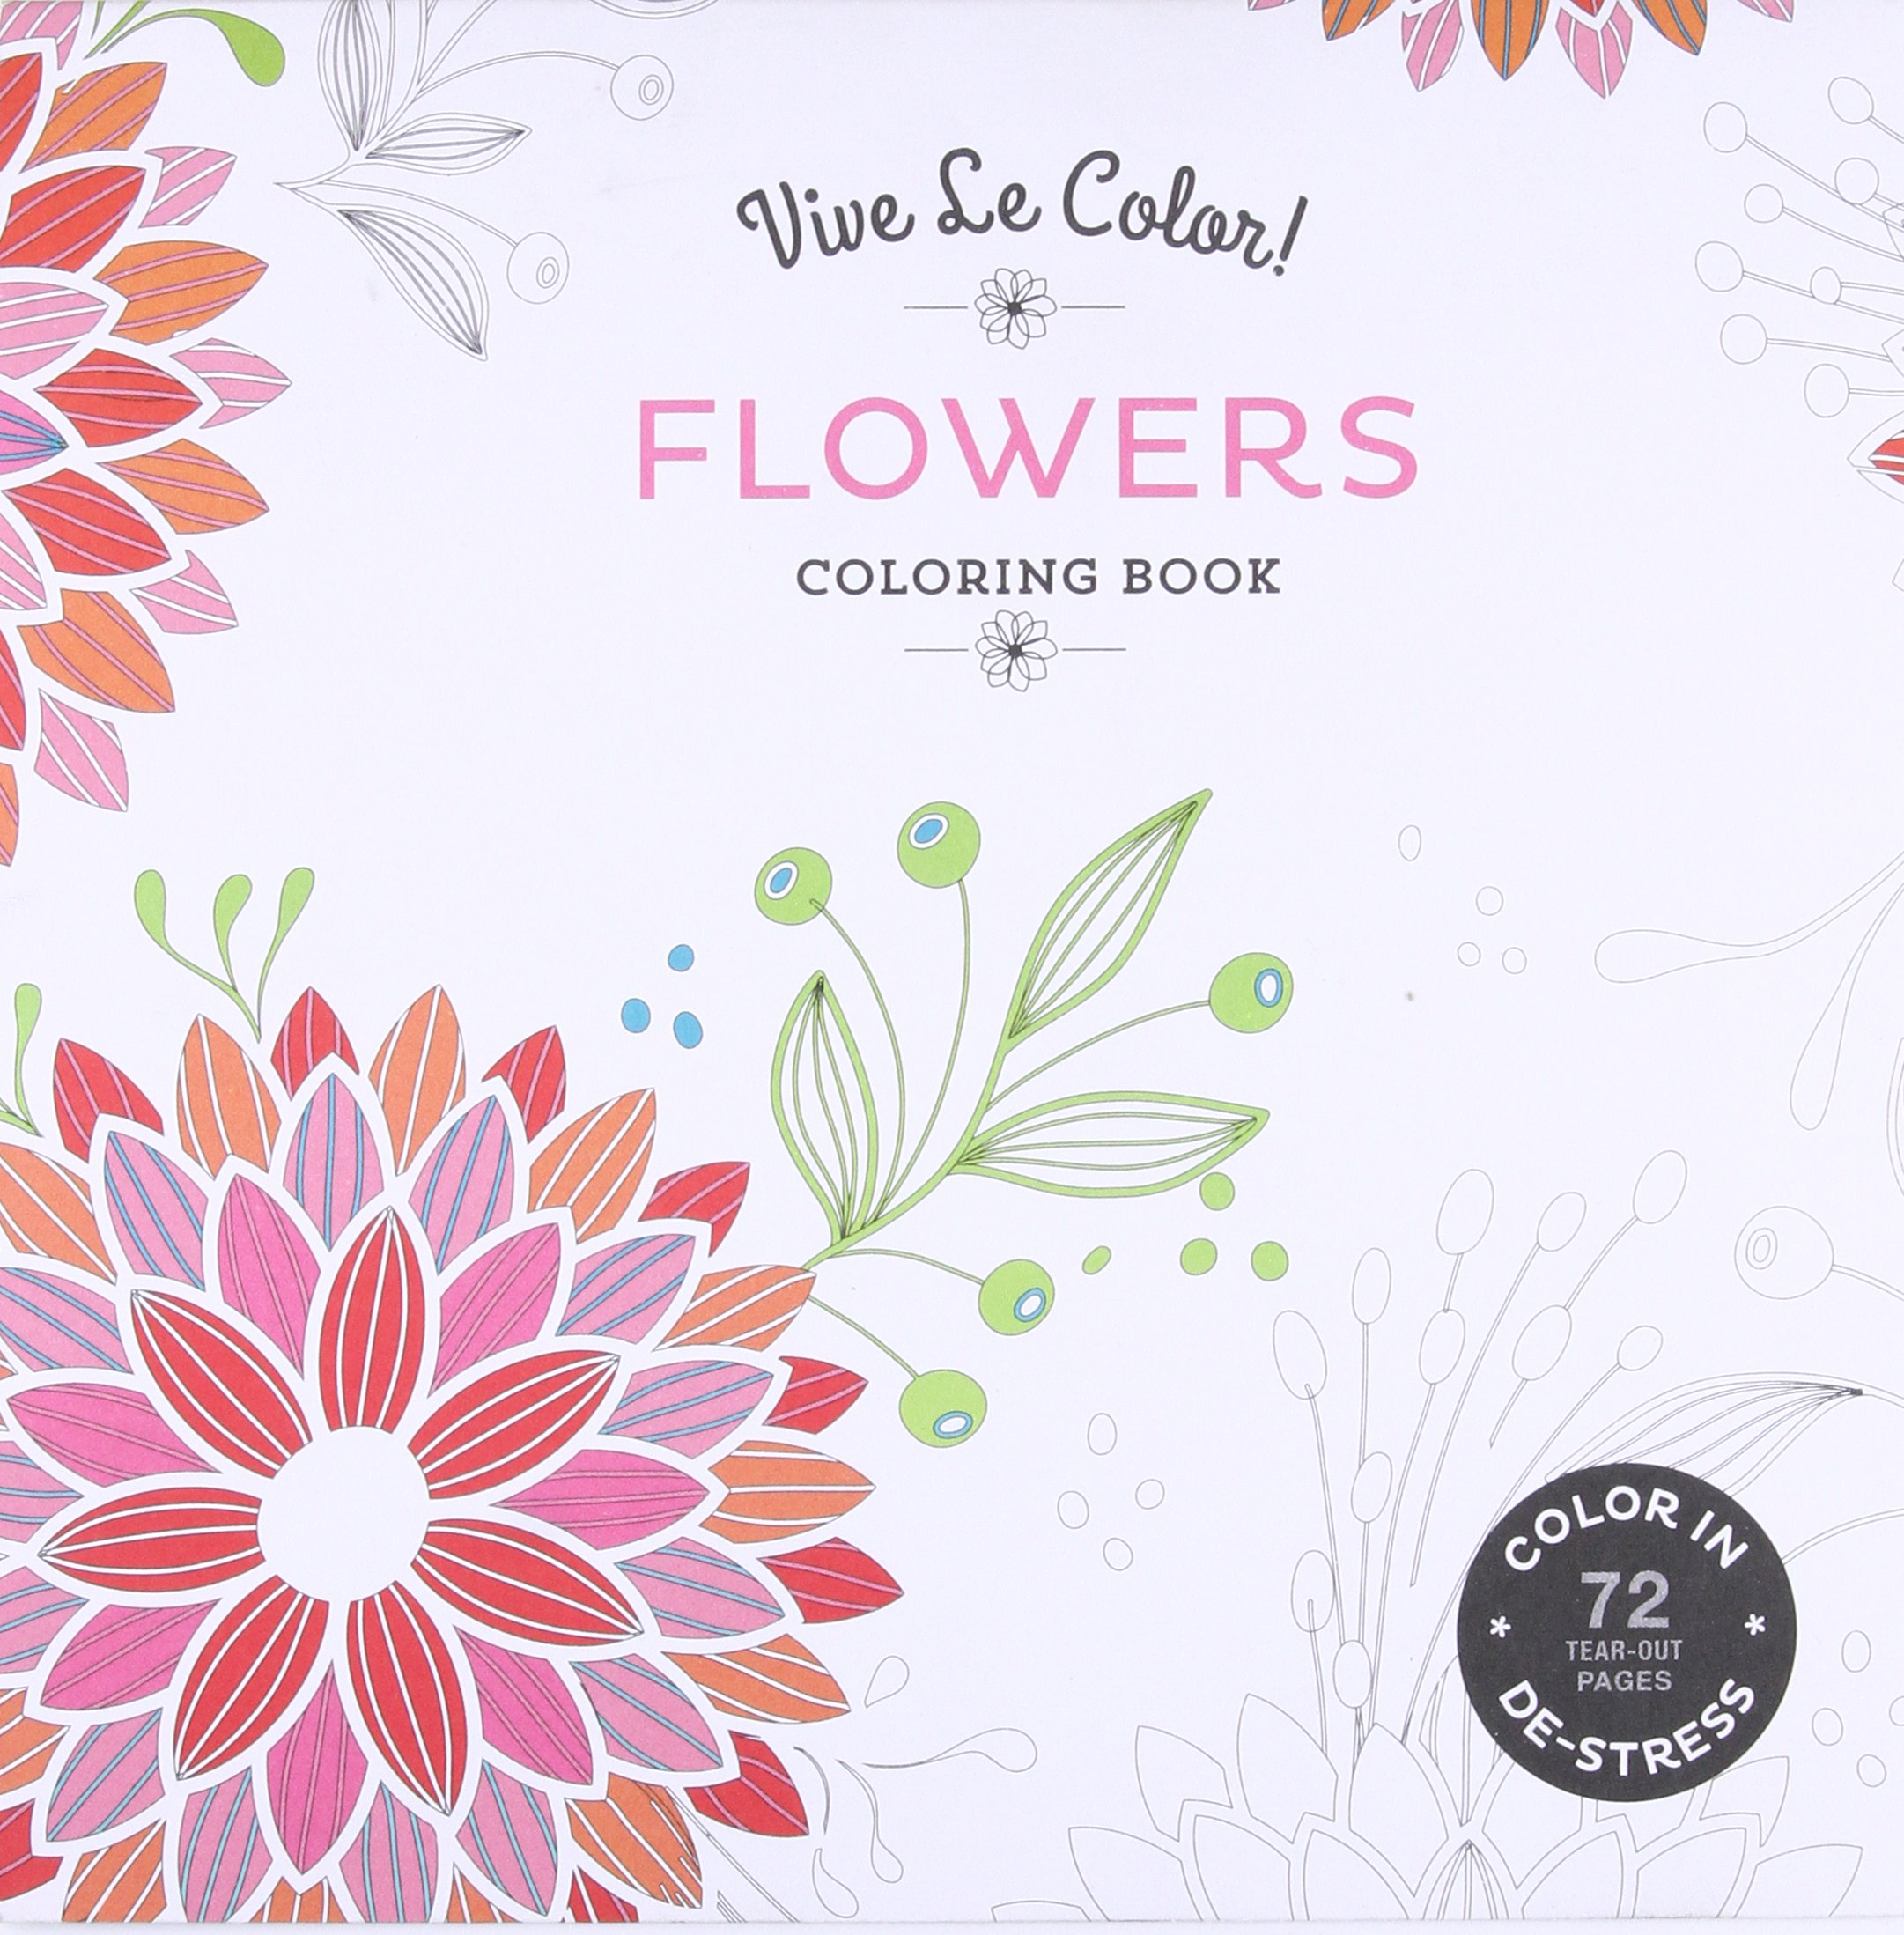 Vive Le Color! Flowers (Adult Coloring Book): Color In; De-stress ...